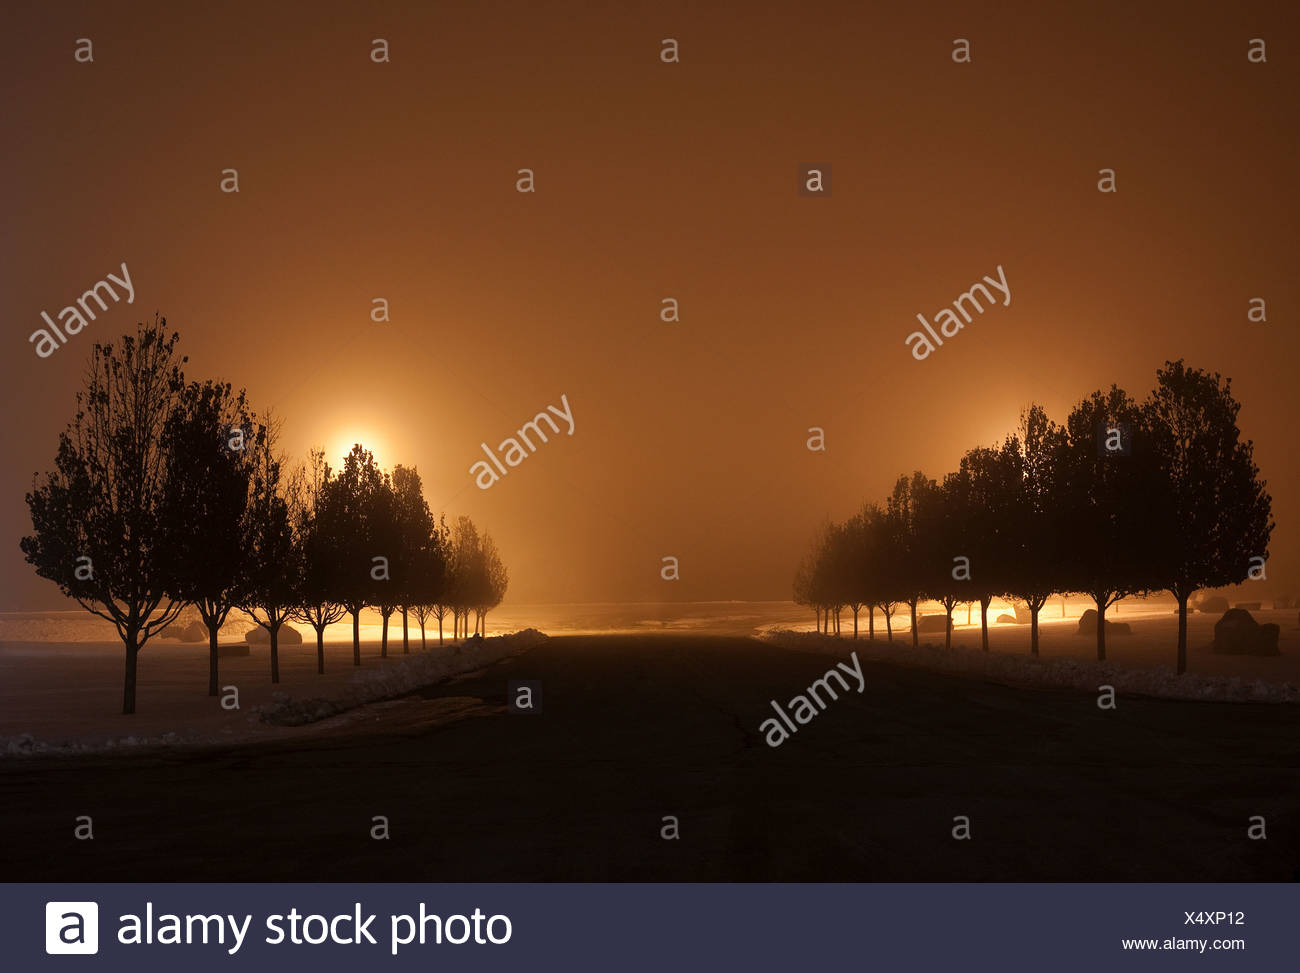 Rows of trees at night - Stock Image